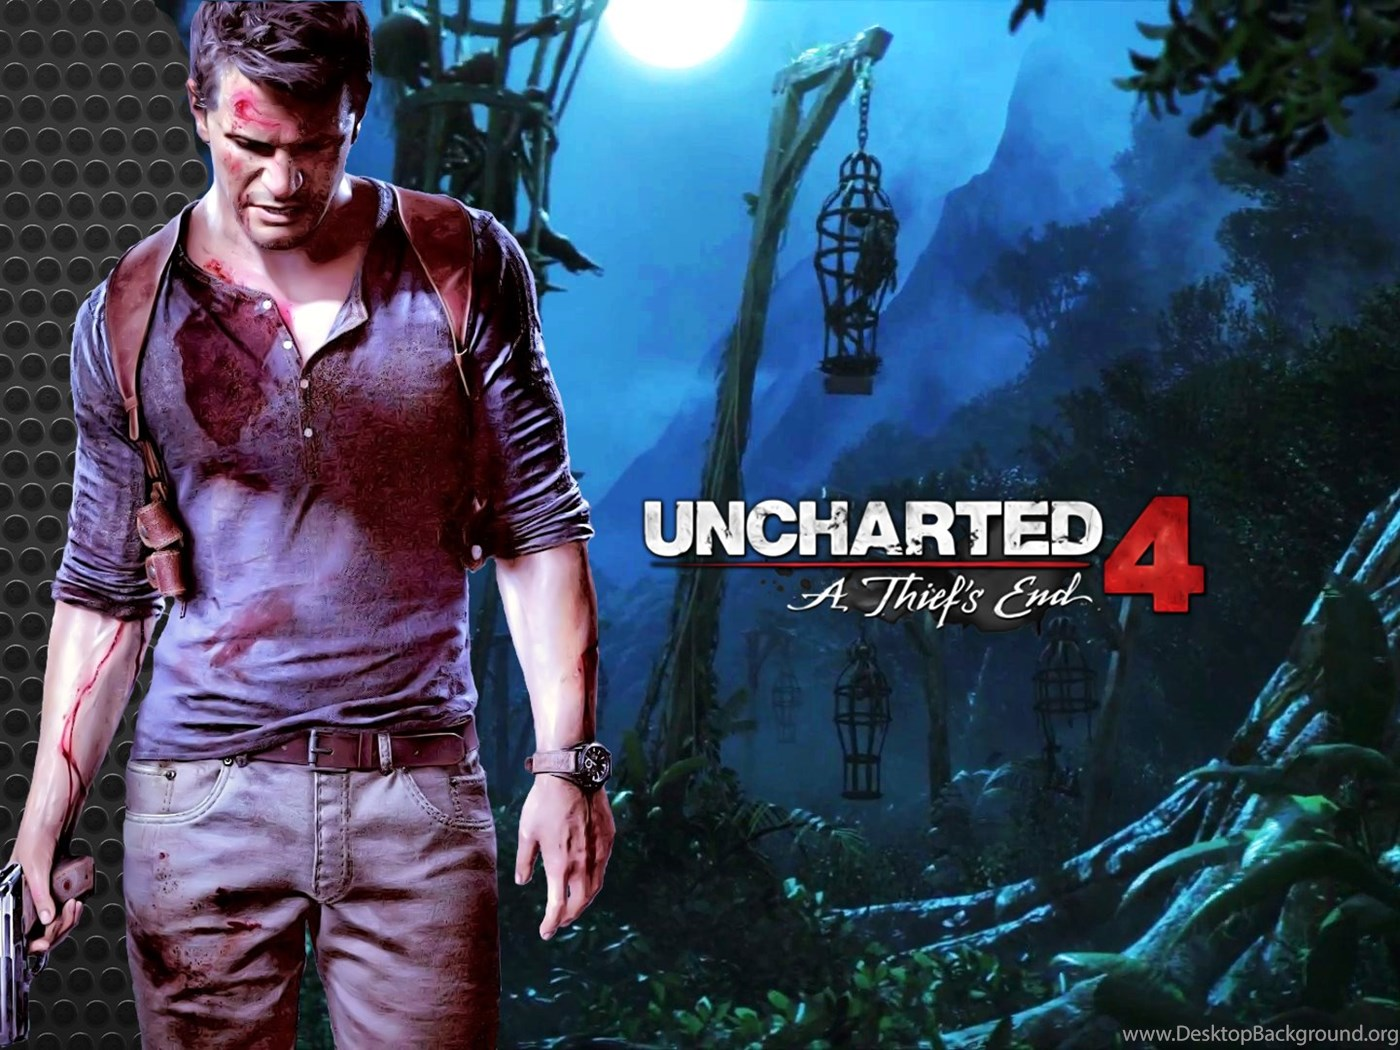 Uncharted 4 Wallpapers High Resolution And Quality Download Desktop Background